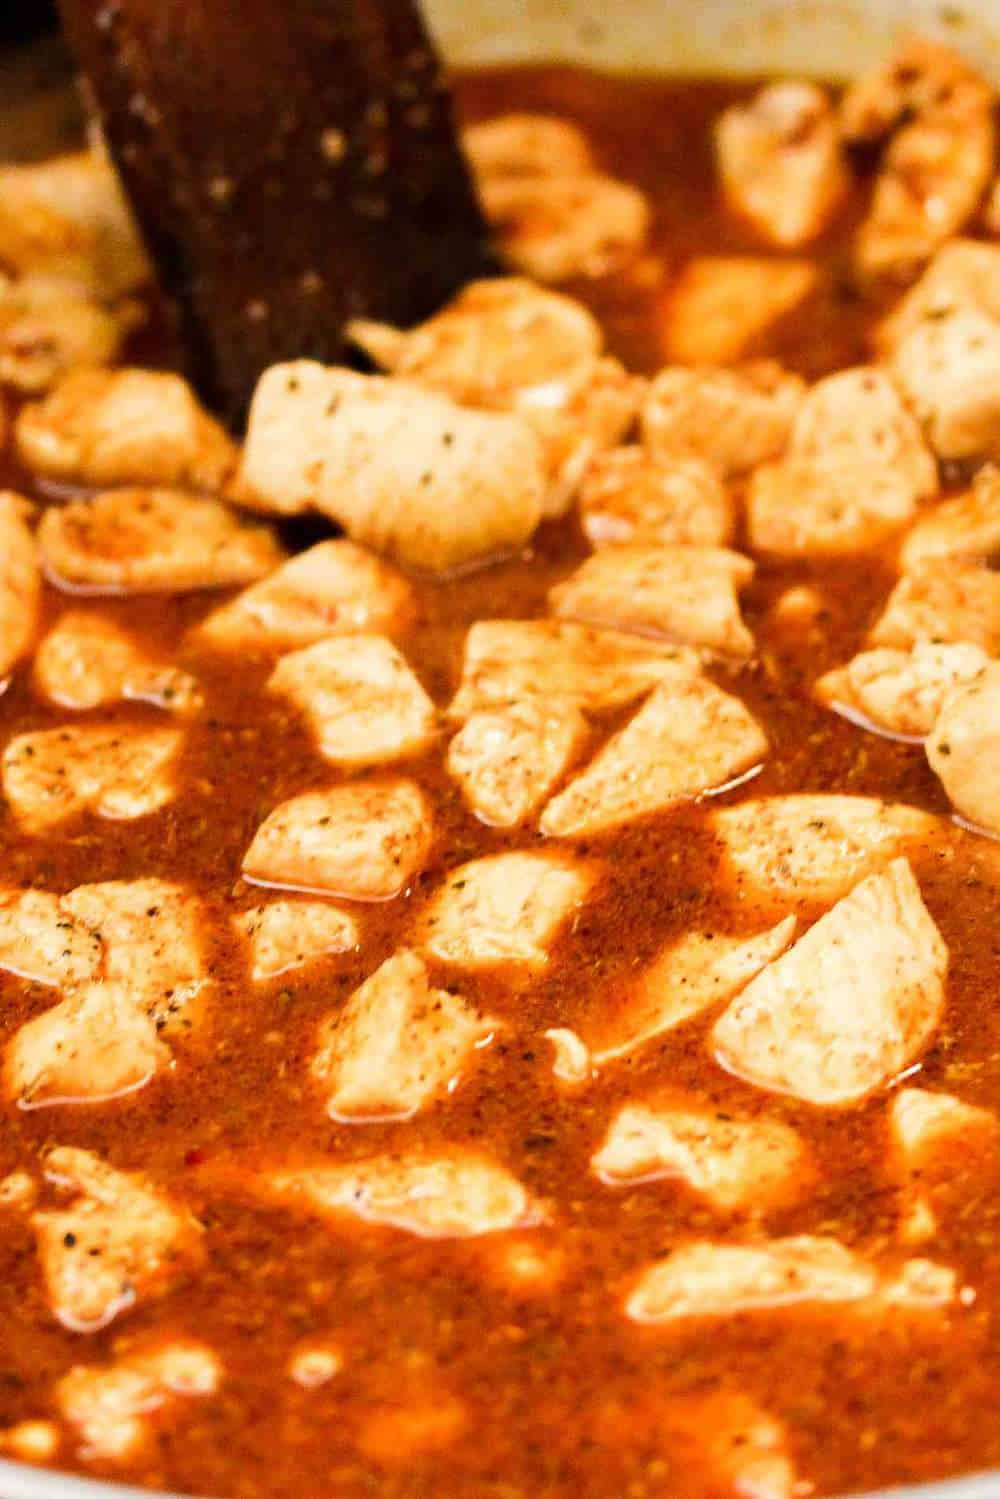 chicken pieces simmering in a Mexican sauce for chicken quesadillas